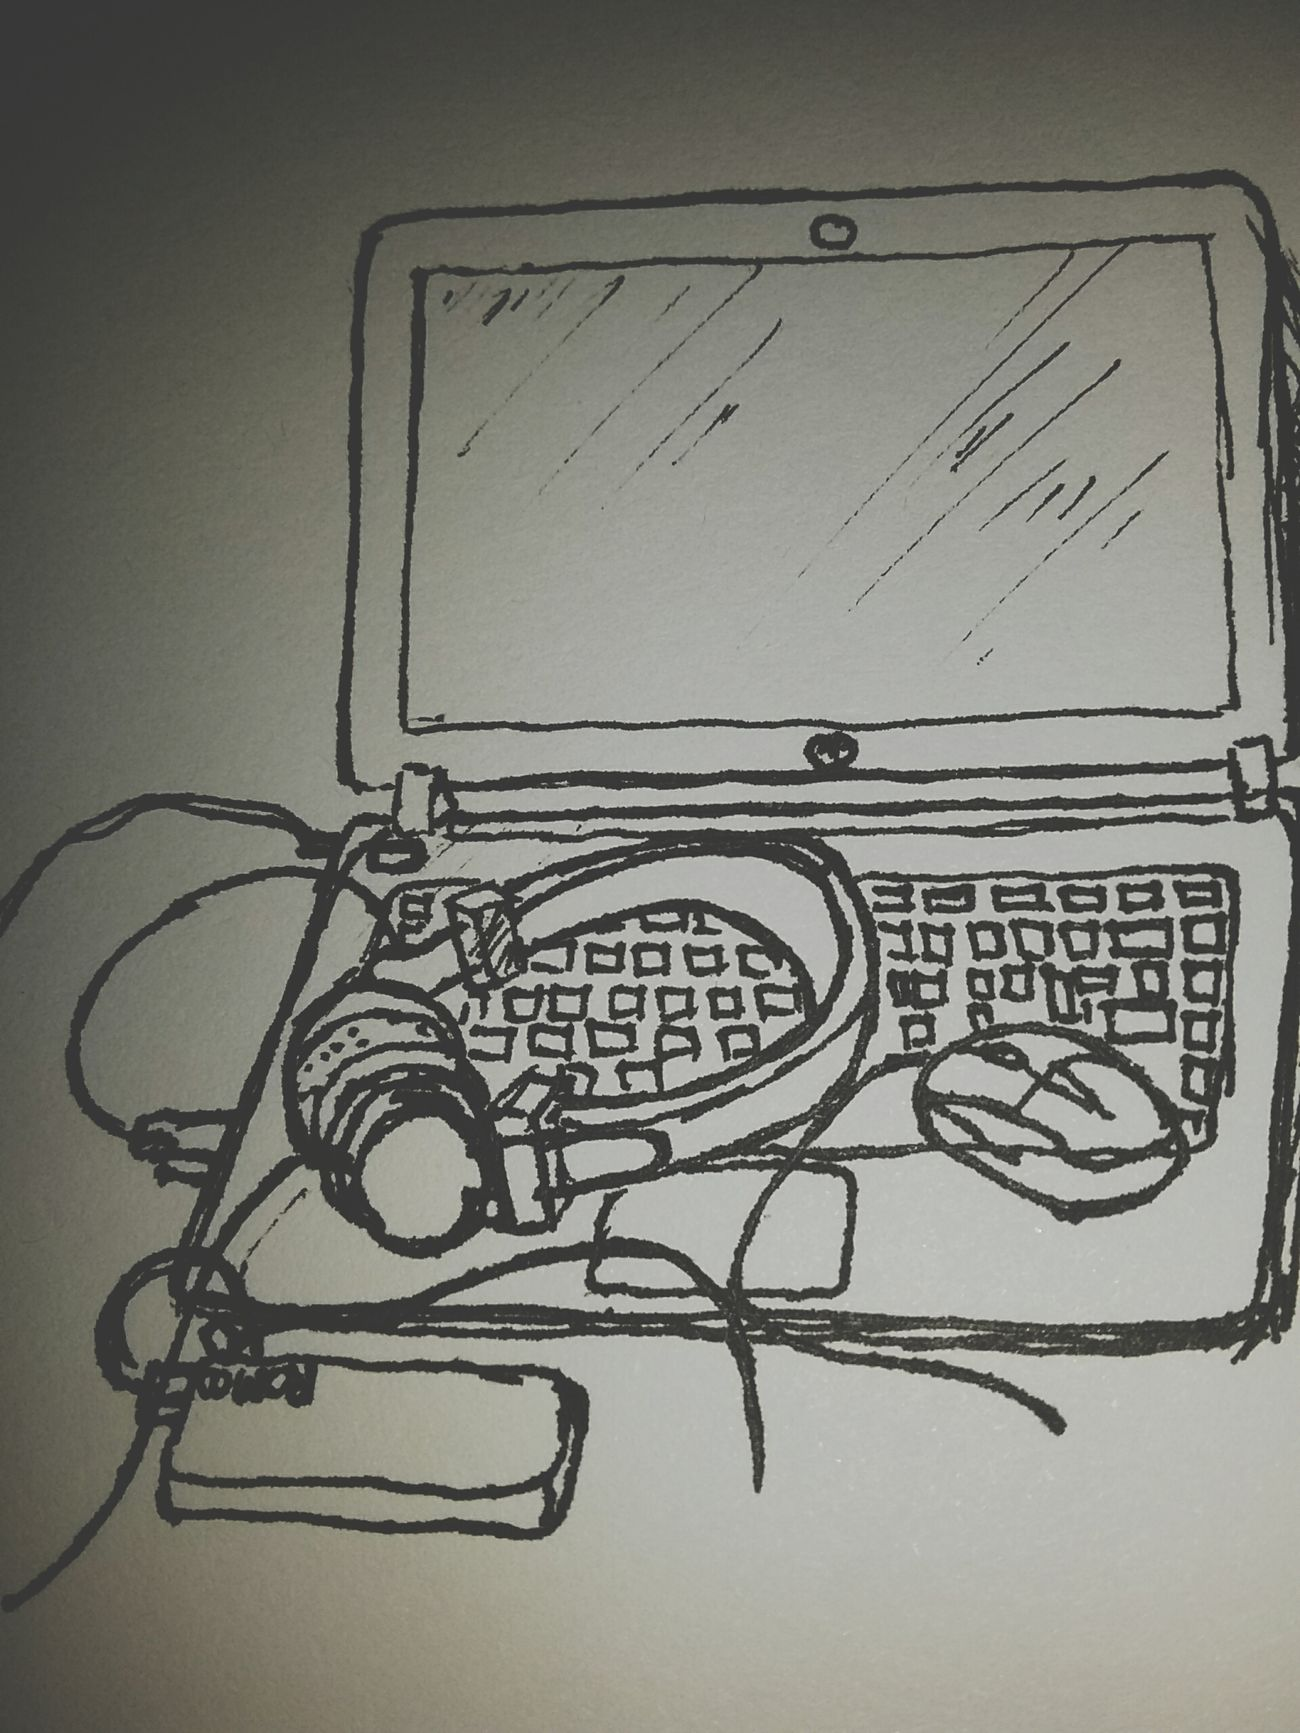 Hello World Music Live Music My Laptop Check This Out Bored Lol Sketch Livesketch Black&white Drawing ByMe